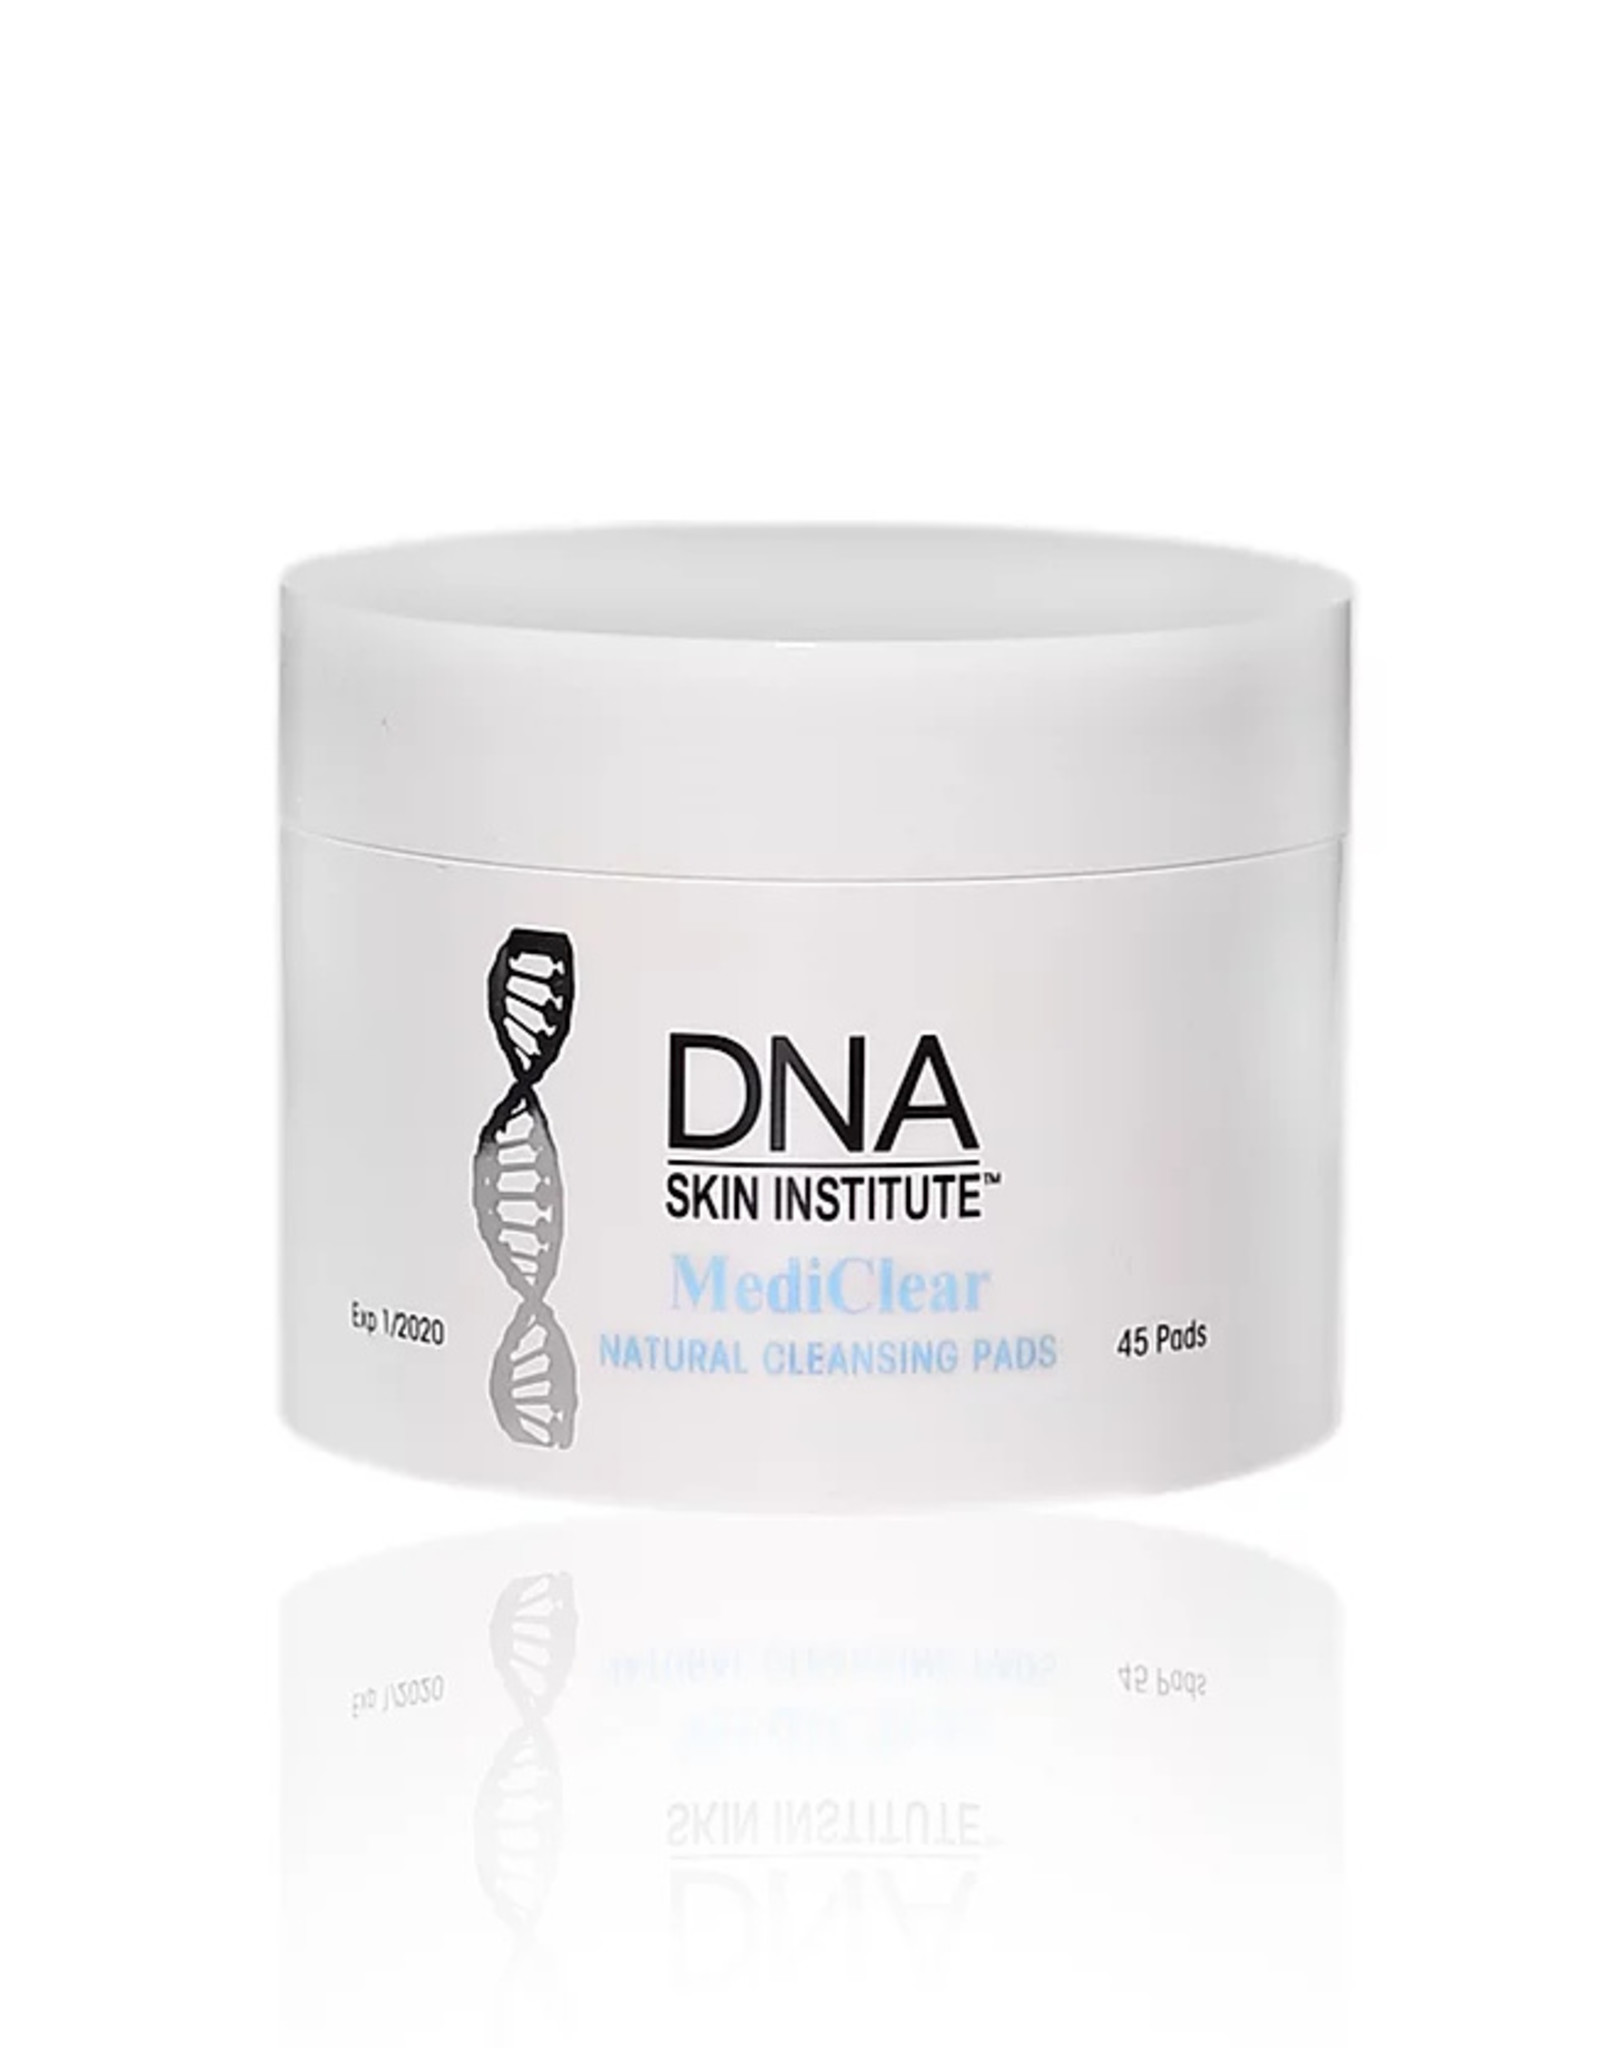 DNA Skin Institute MediClear Pads